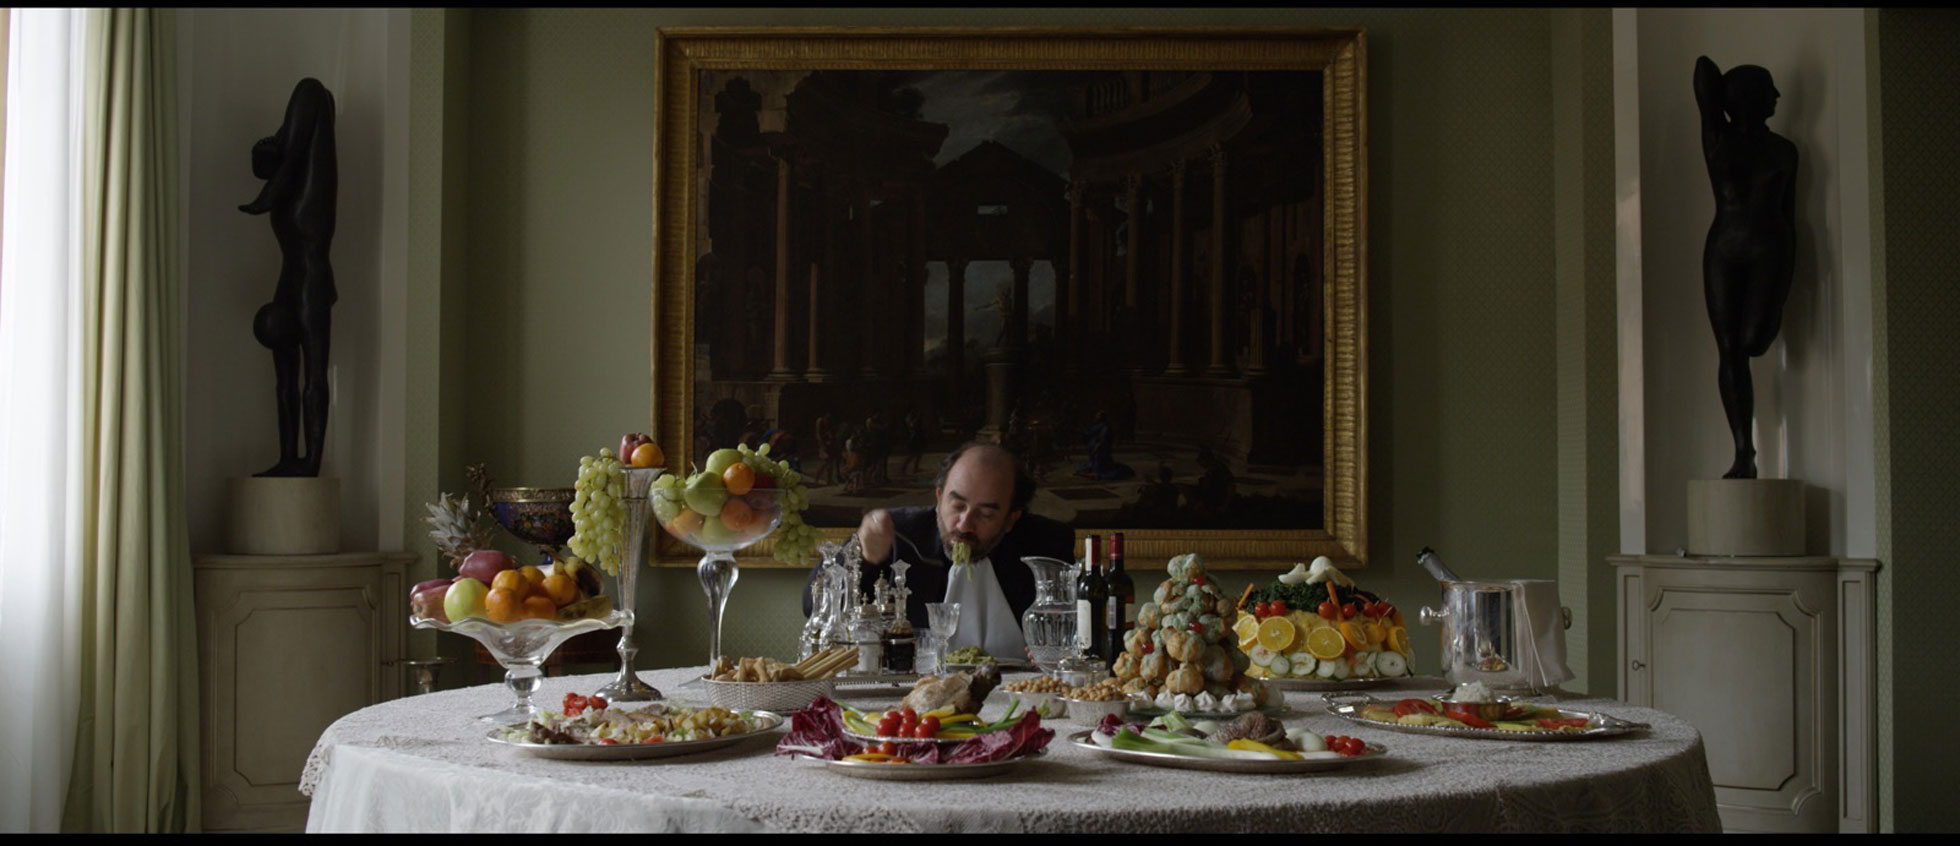 a wealthy man having an extravagant dinner